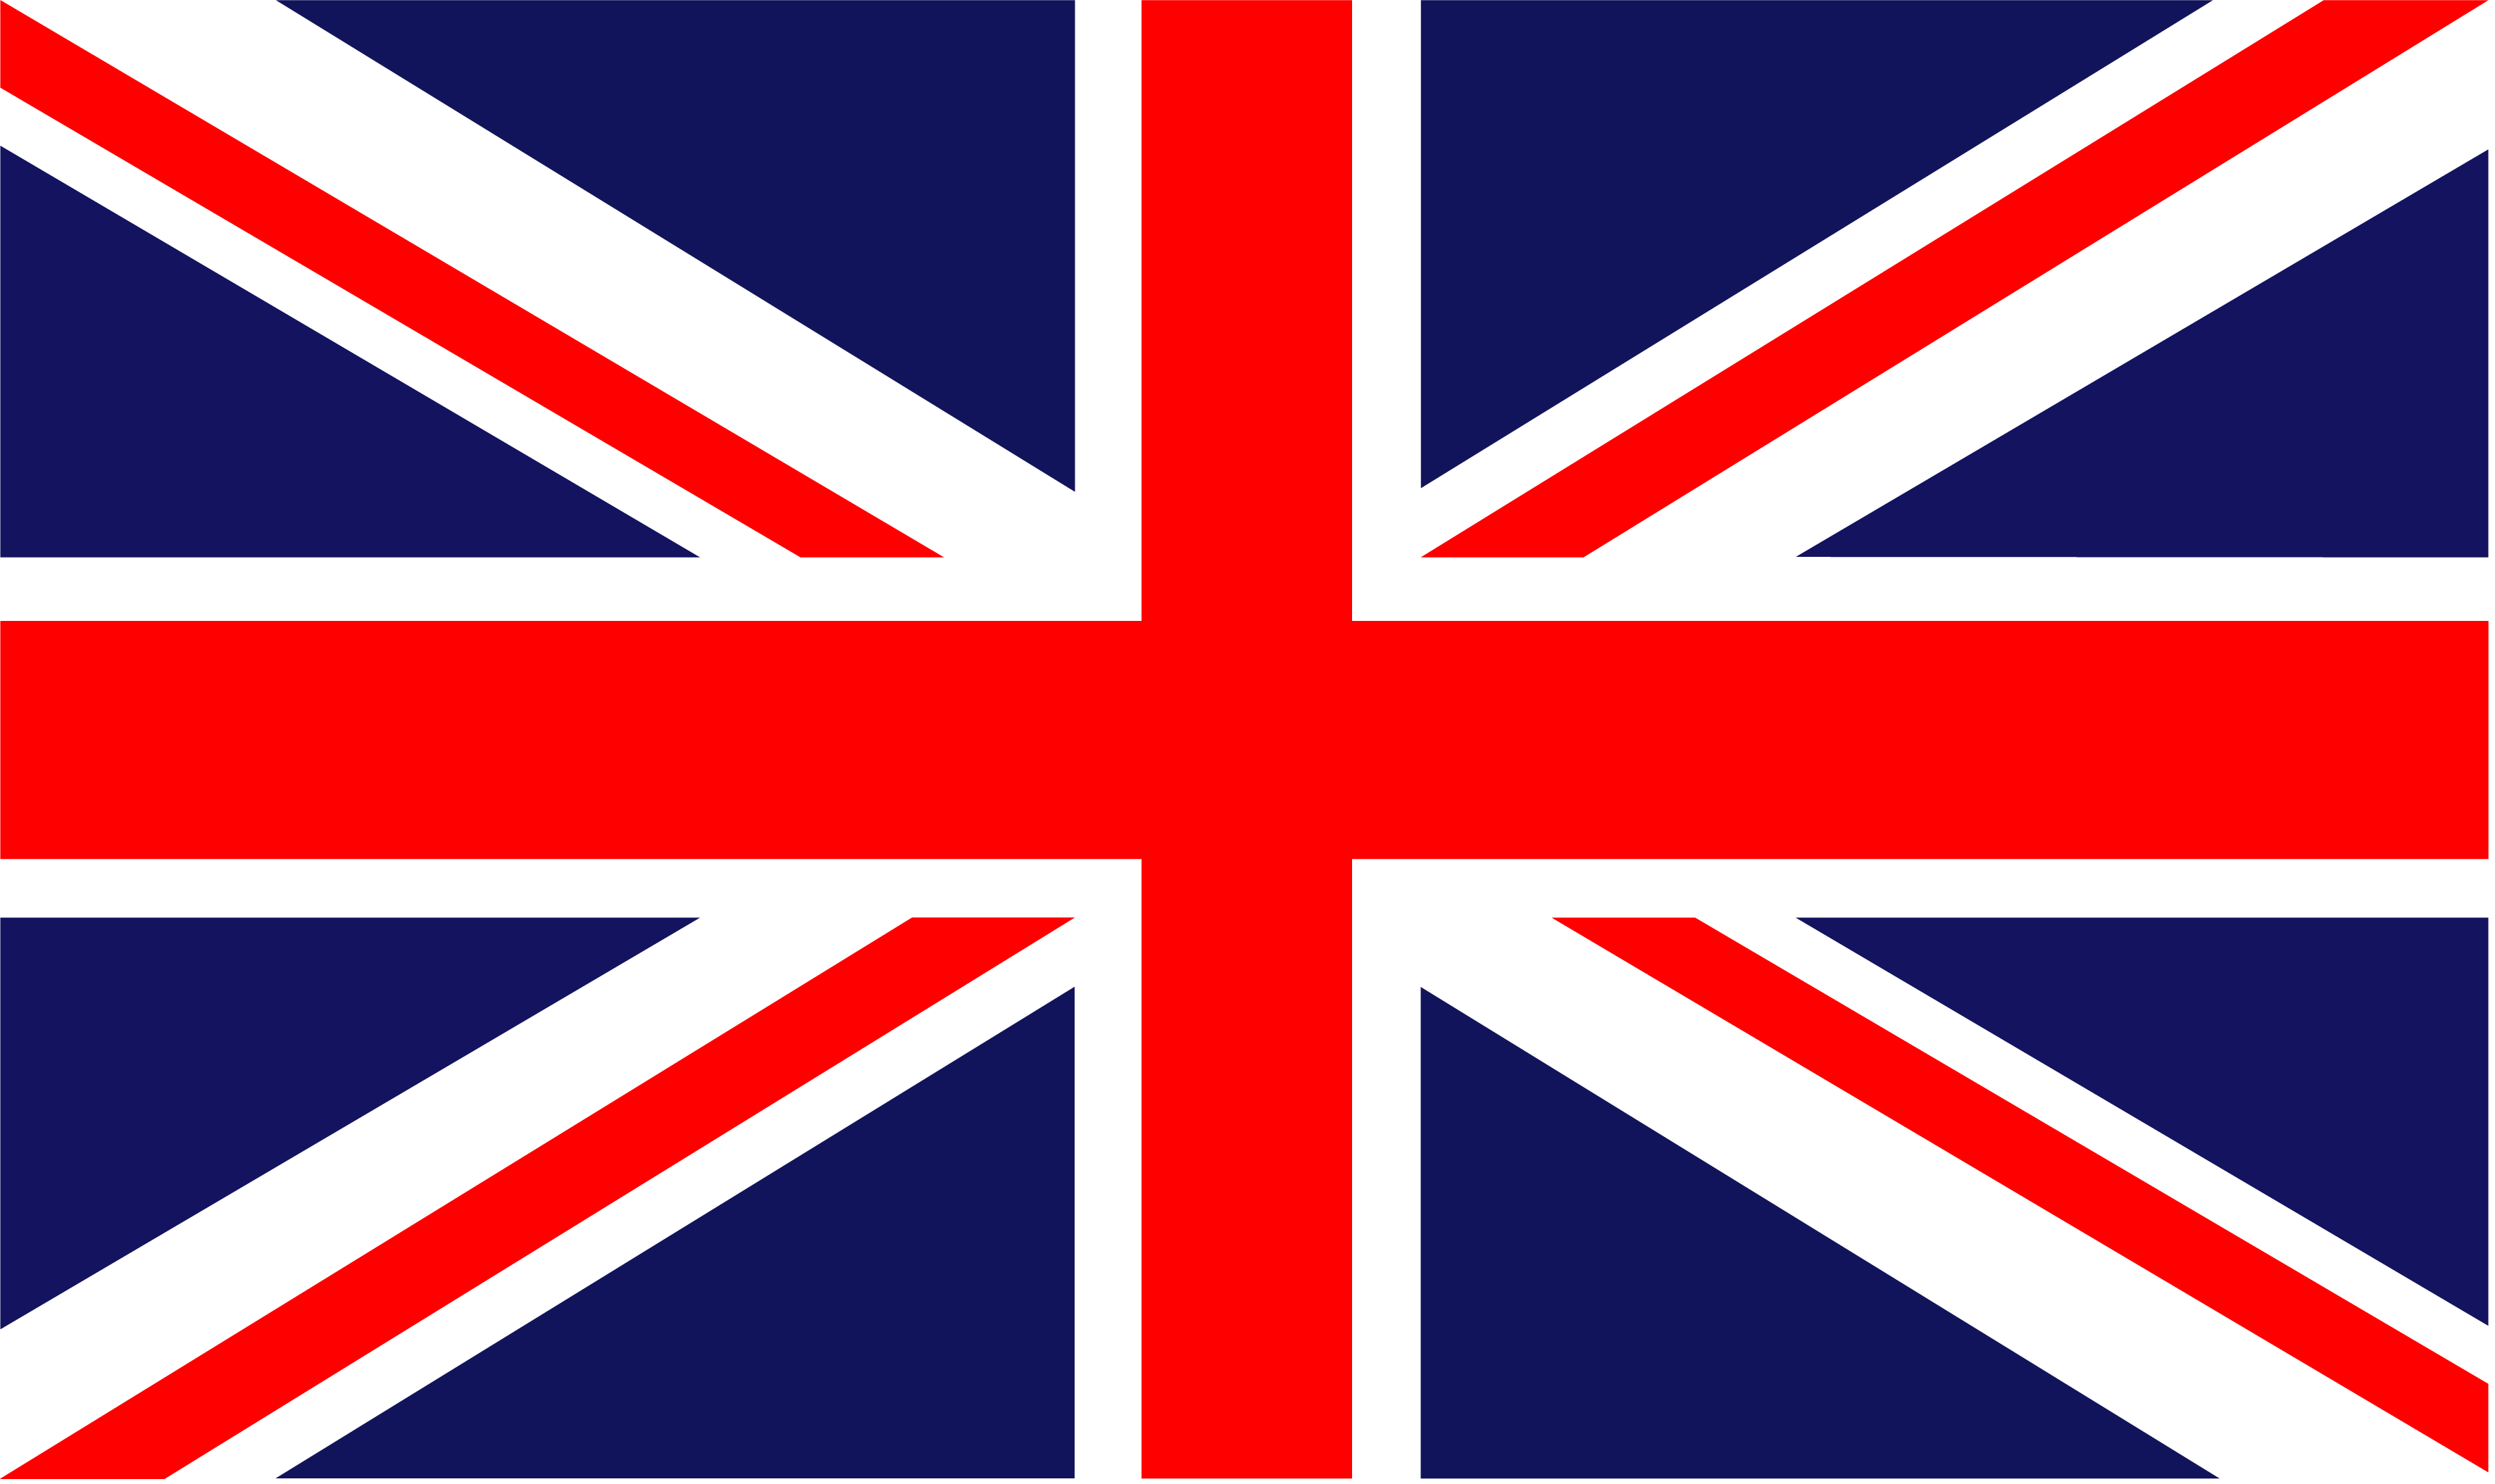 flag_great_britain_flag